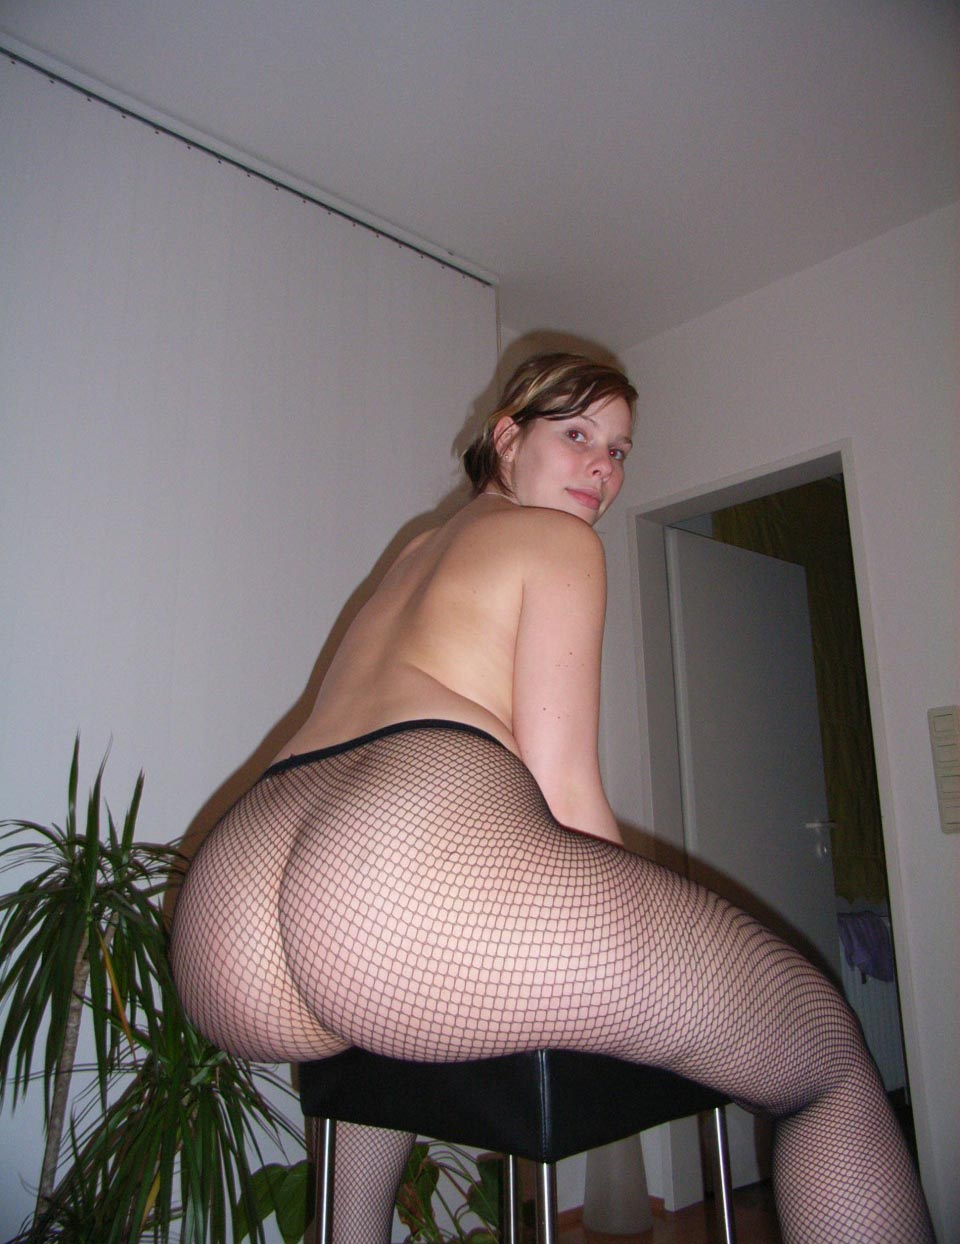 cul de mature escort girl le raincy